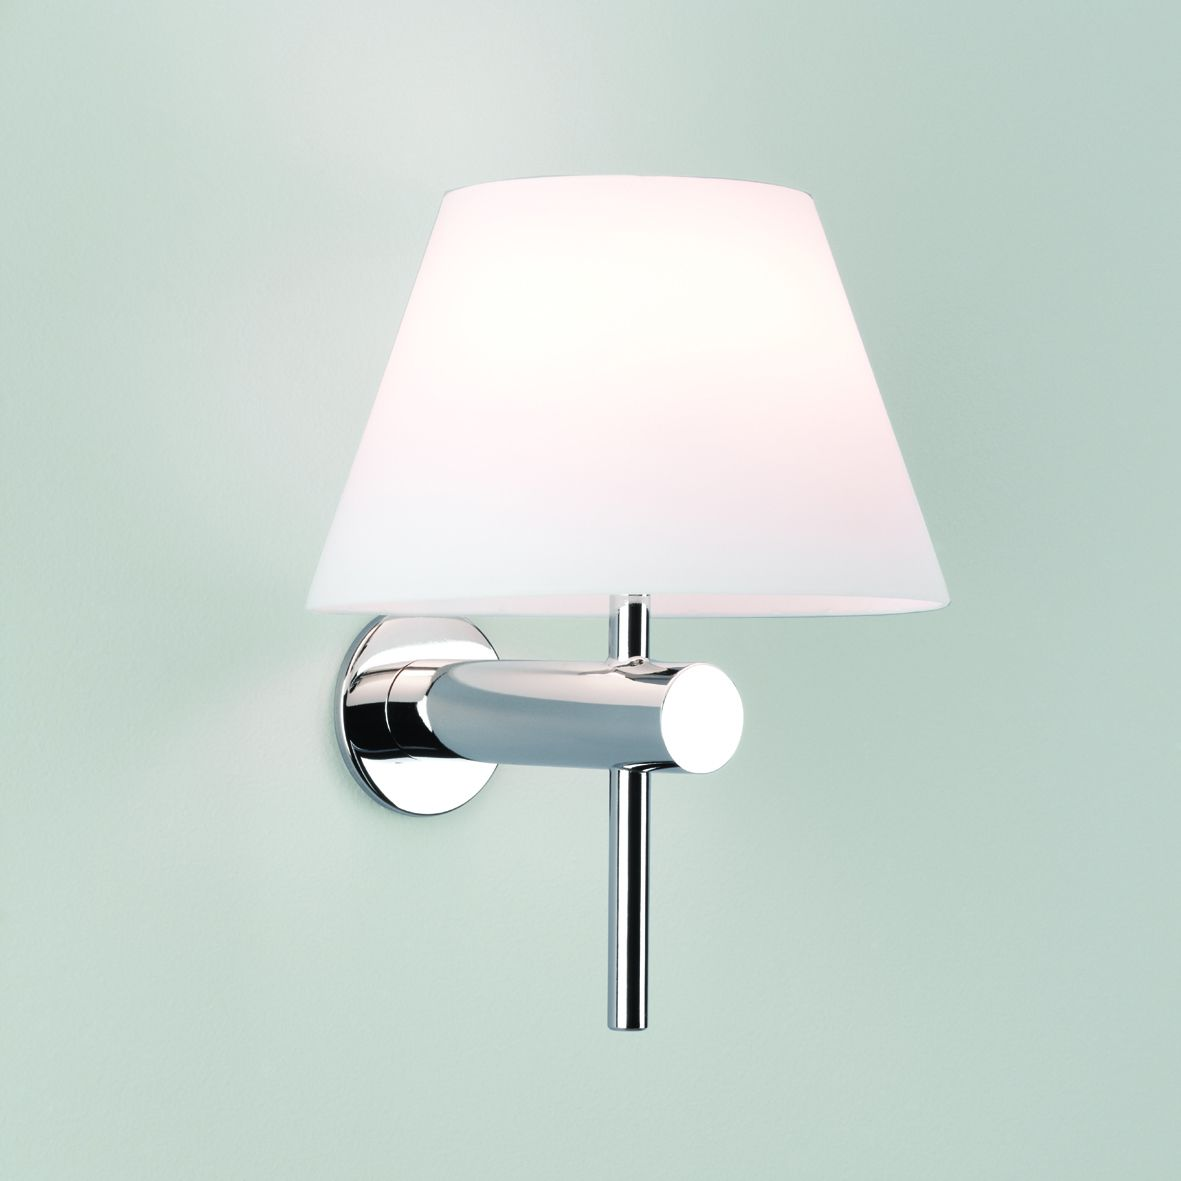 Chrom-Design-Bad-Lampe-lampen für bad